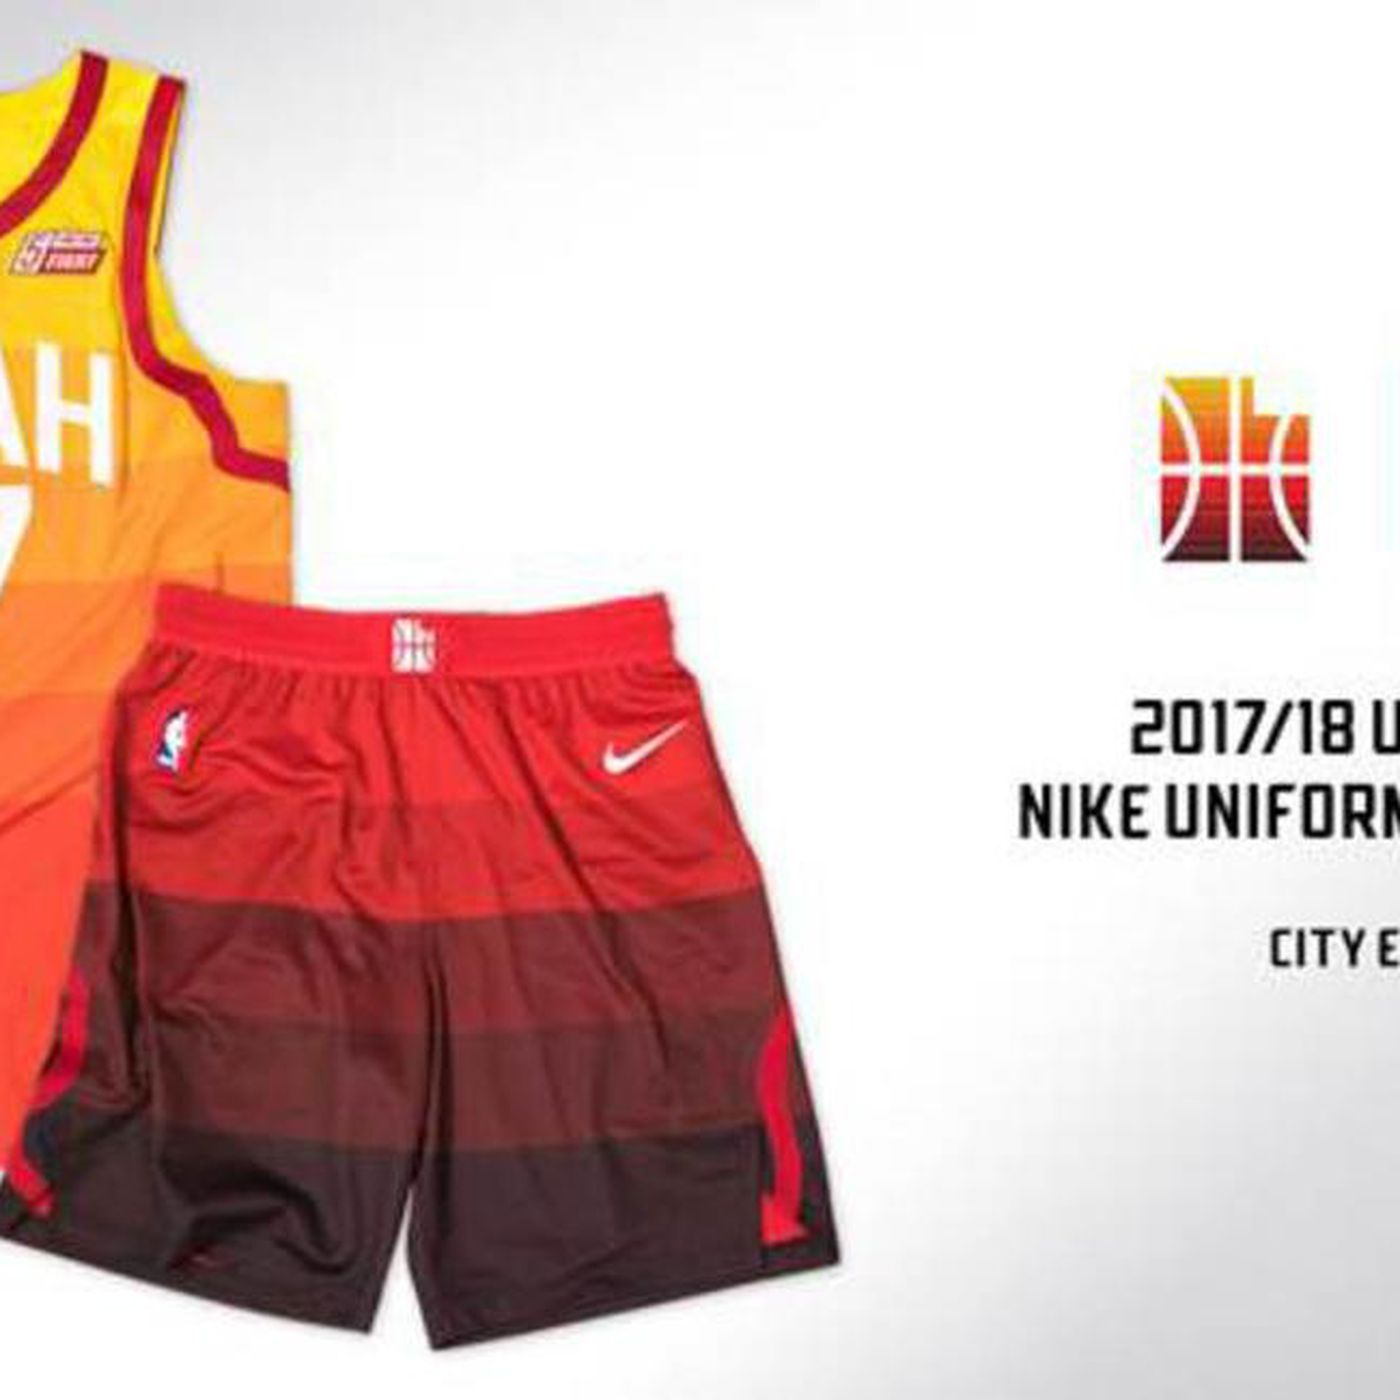 Nba Christmas Jerseys 2017.Utah Jazz Deliver Christmas Gift To State By Unveiling New